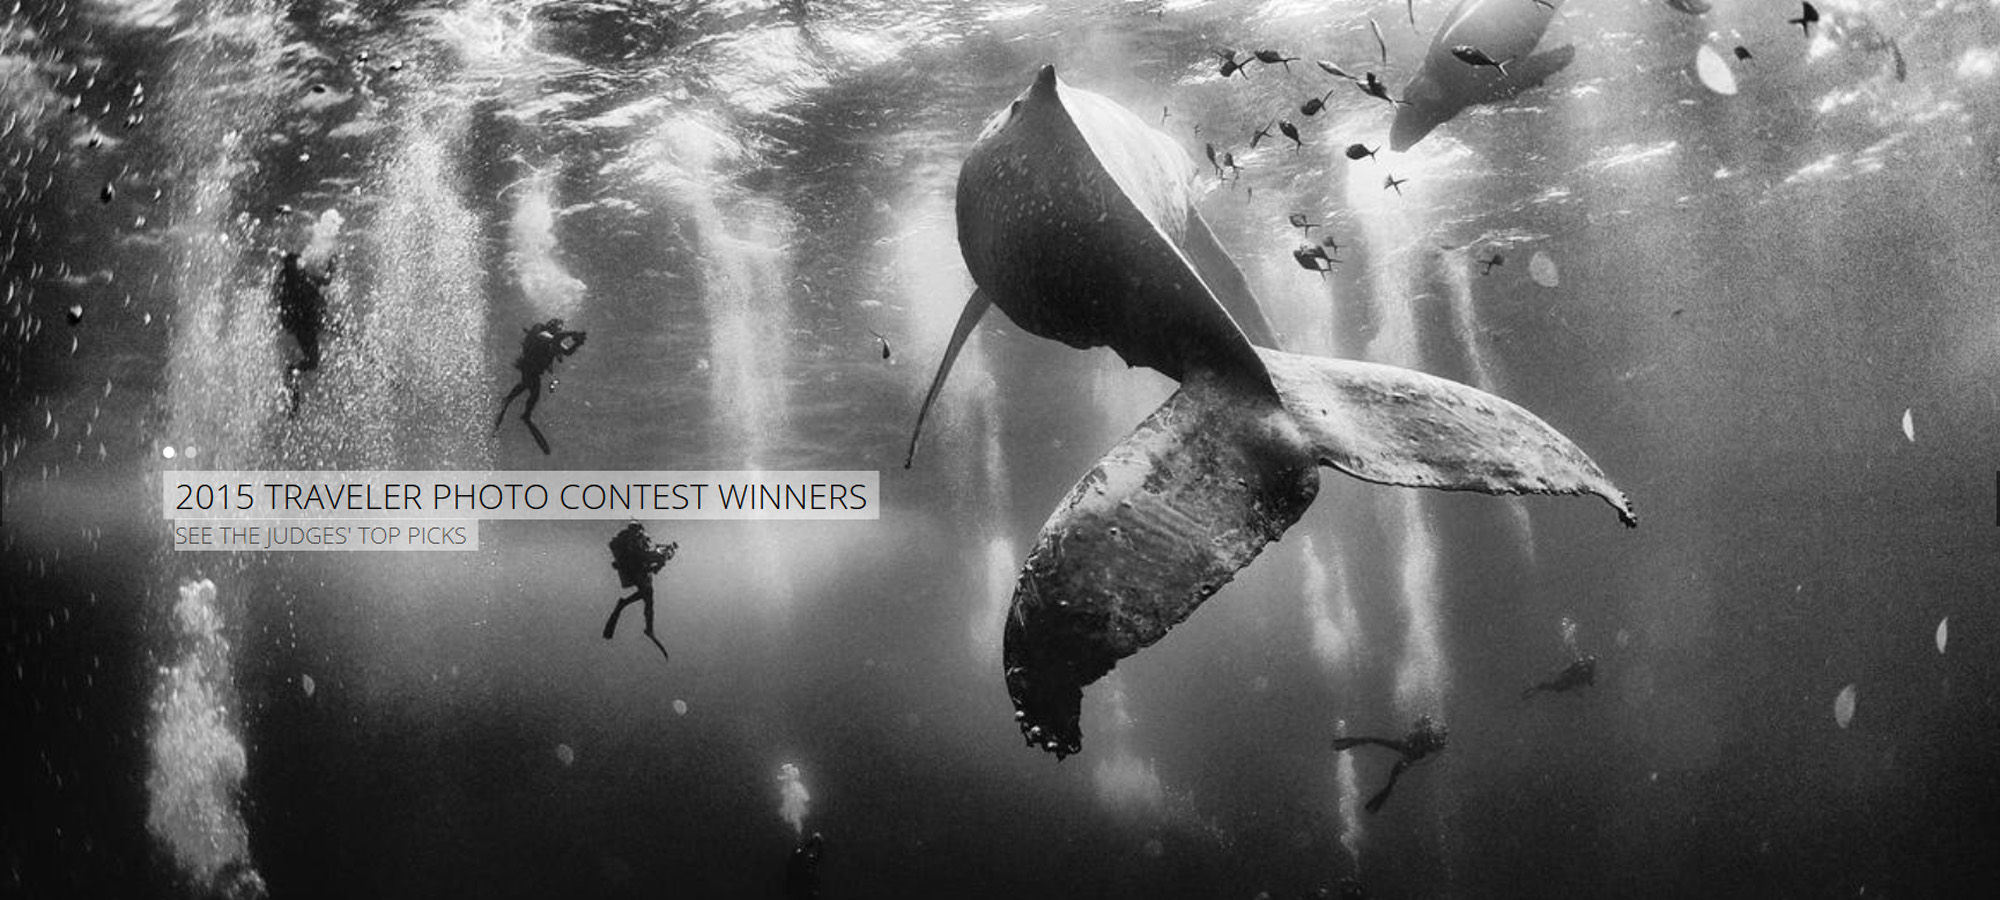 2015 Traveler Photo Contest